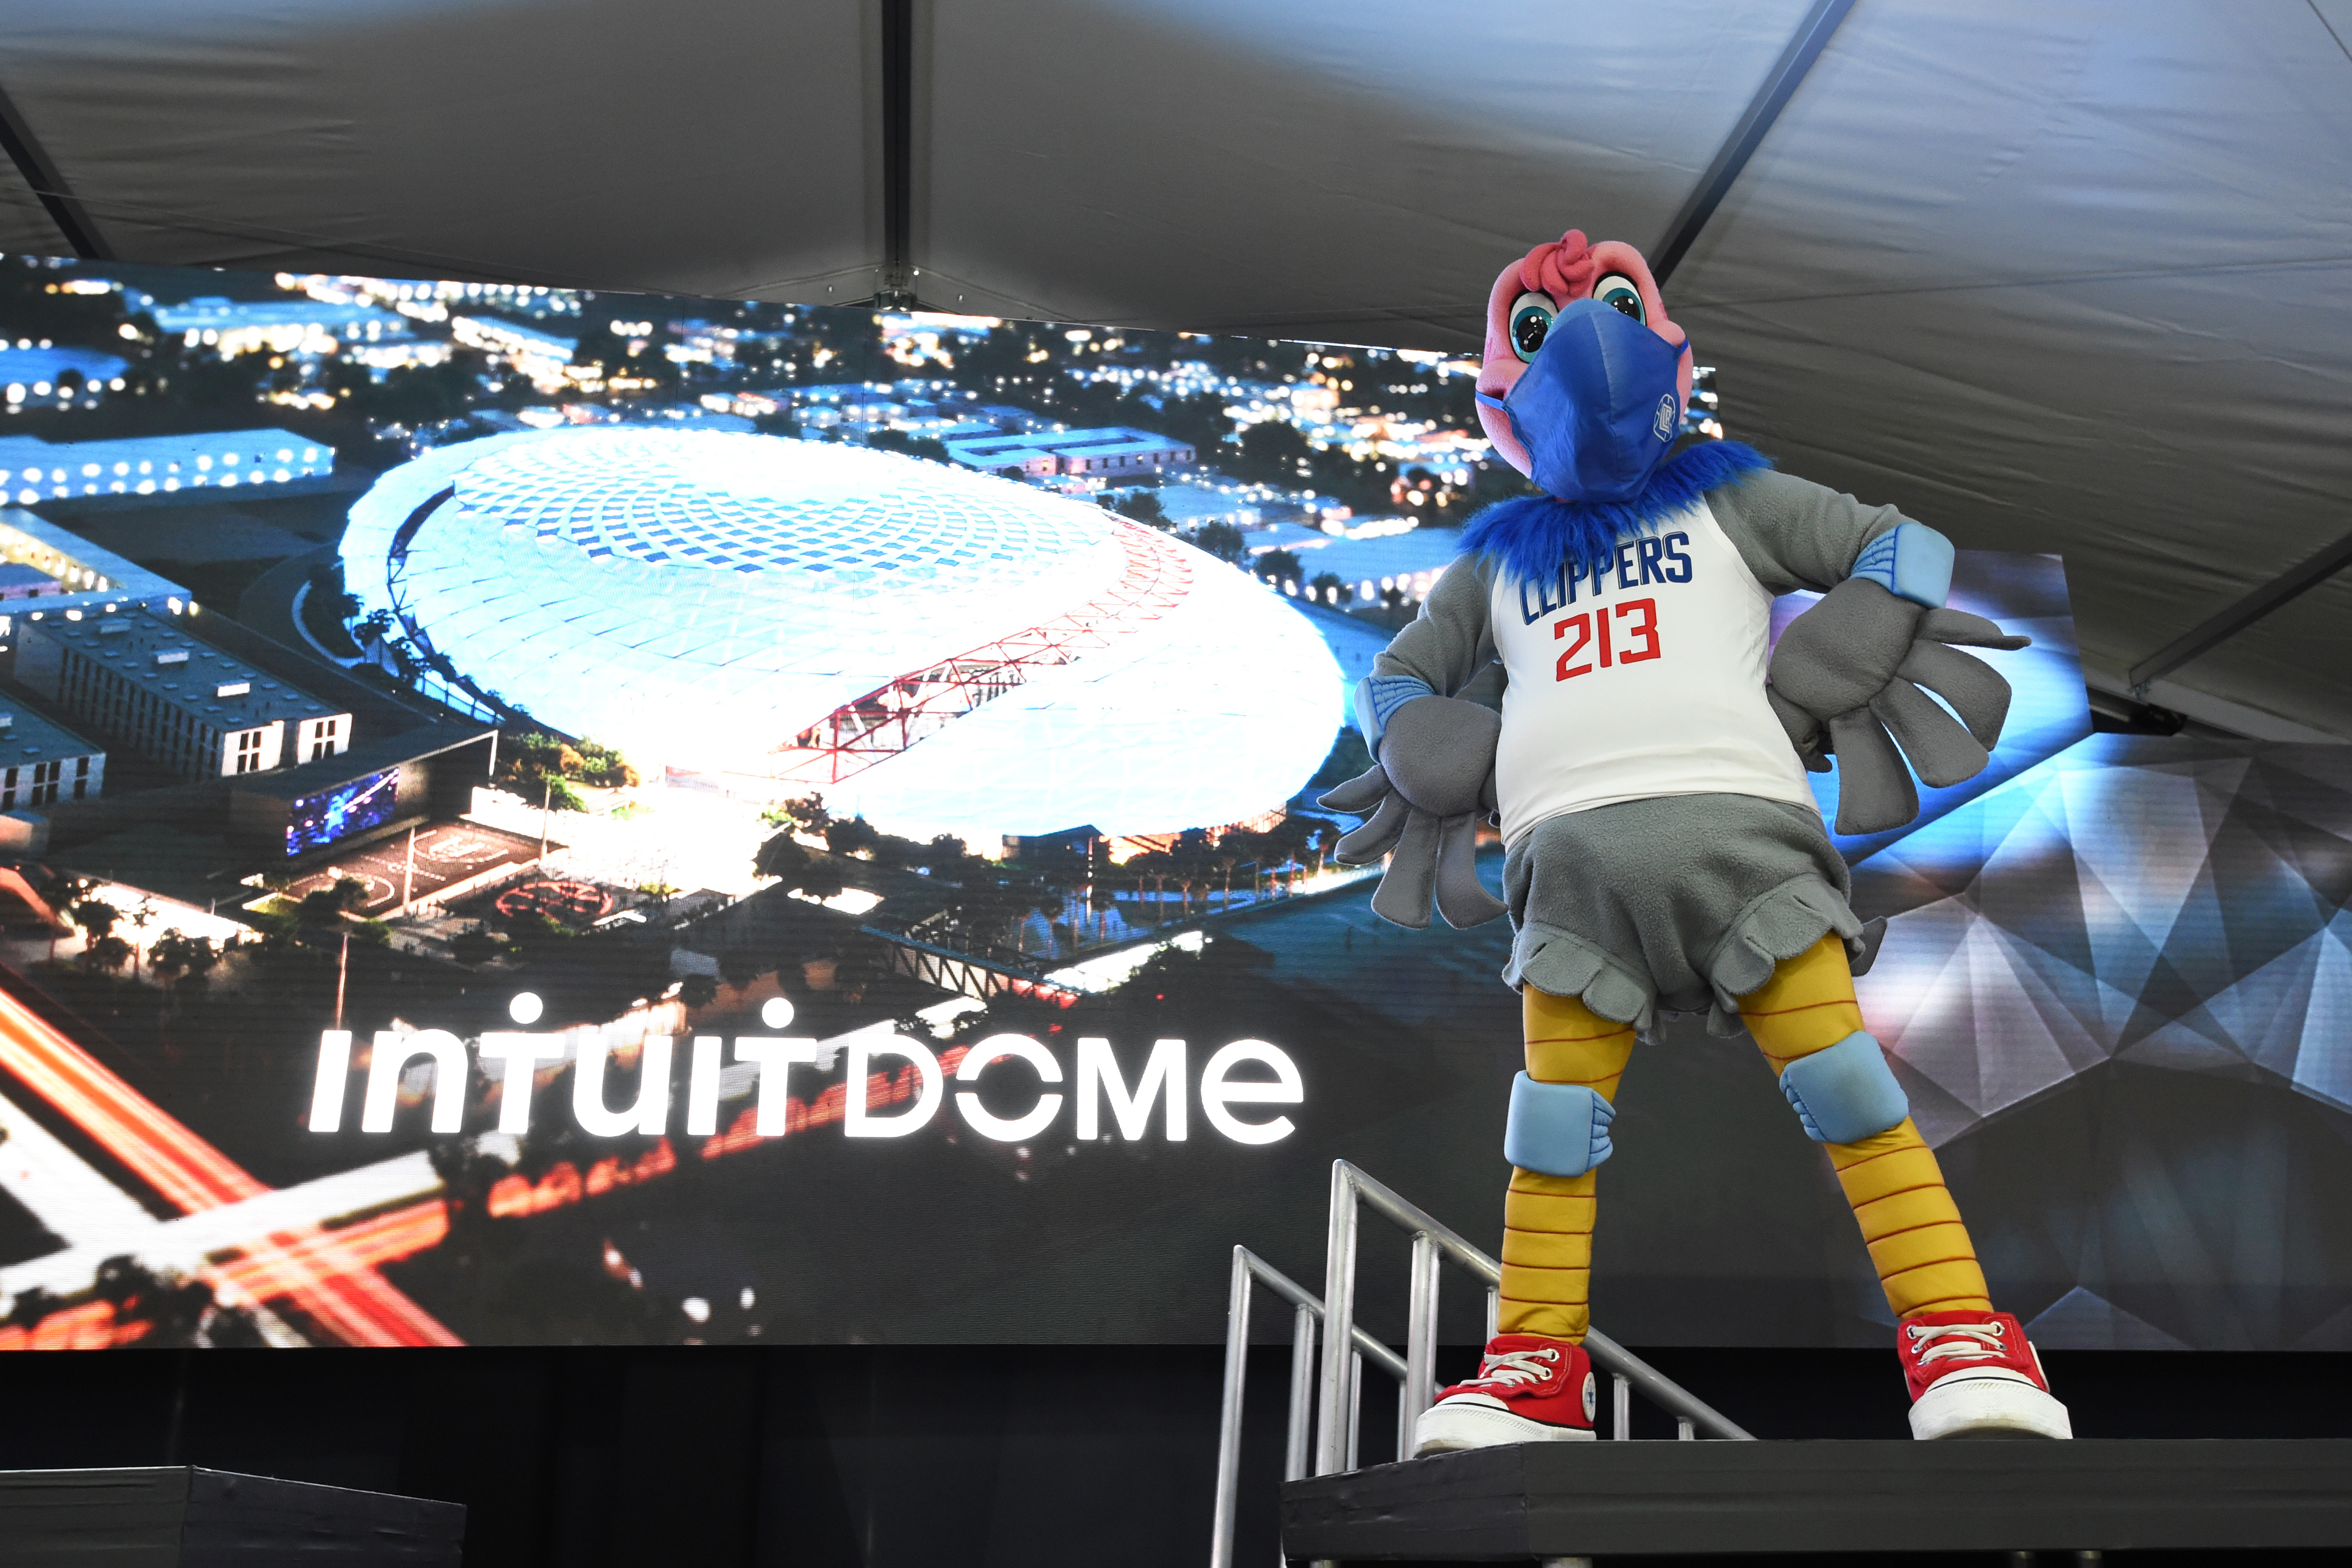 LA Clippers Break Ground on Intuit Dome